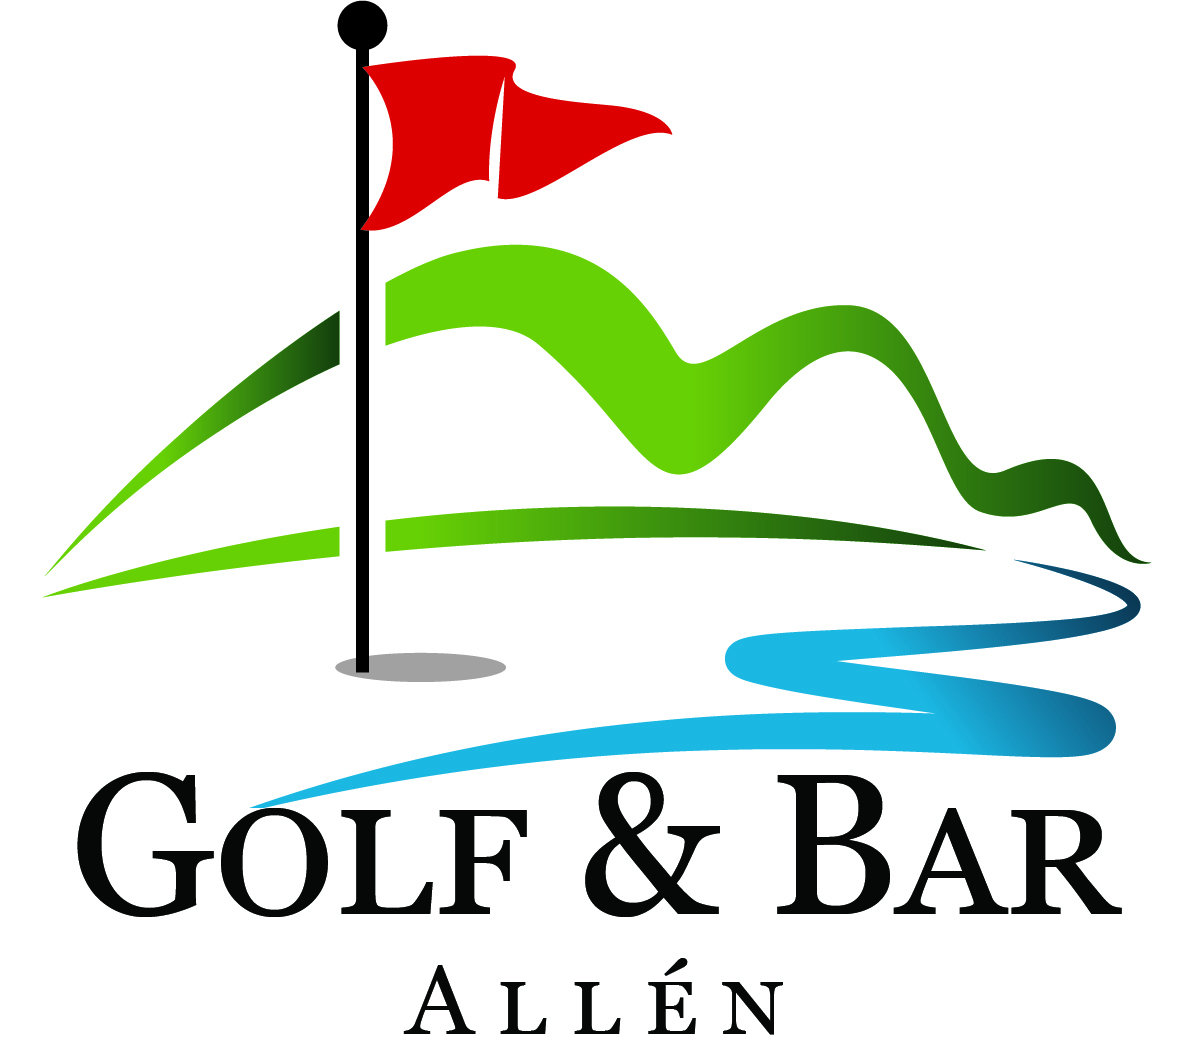 Golf & Bar Allén